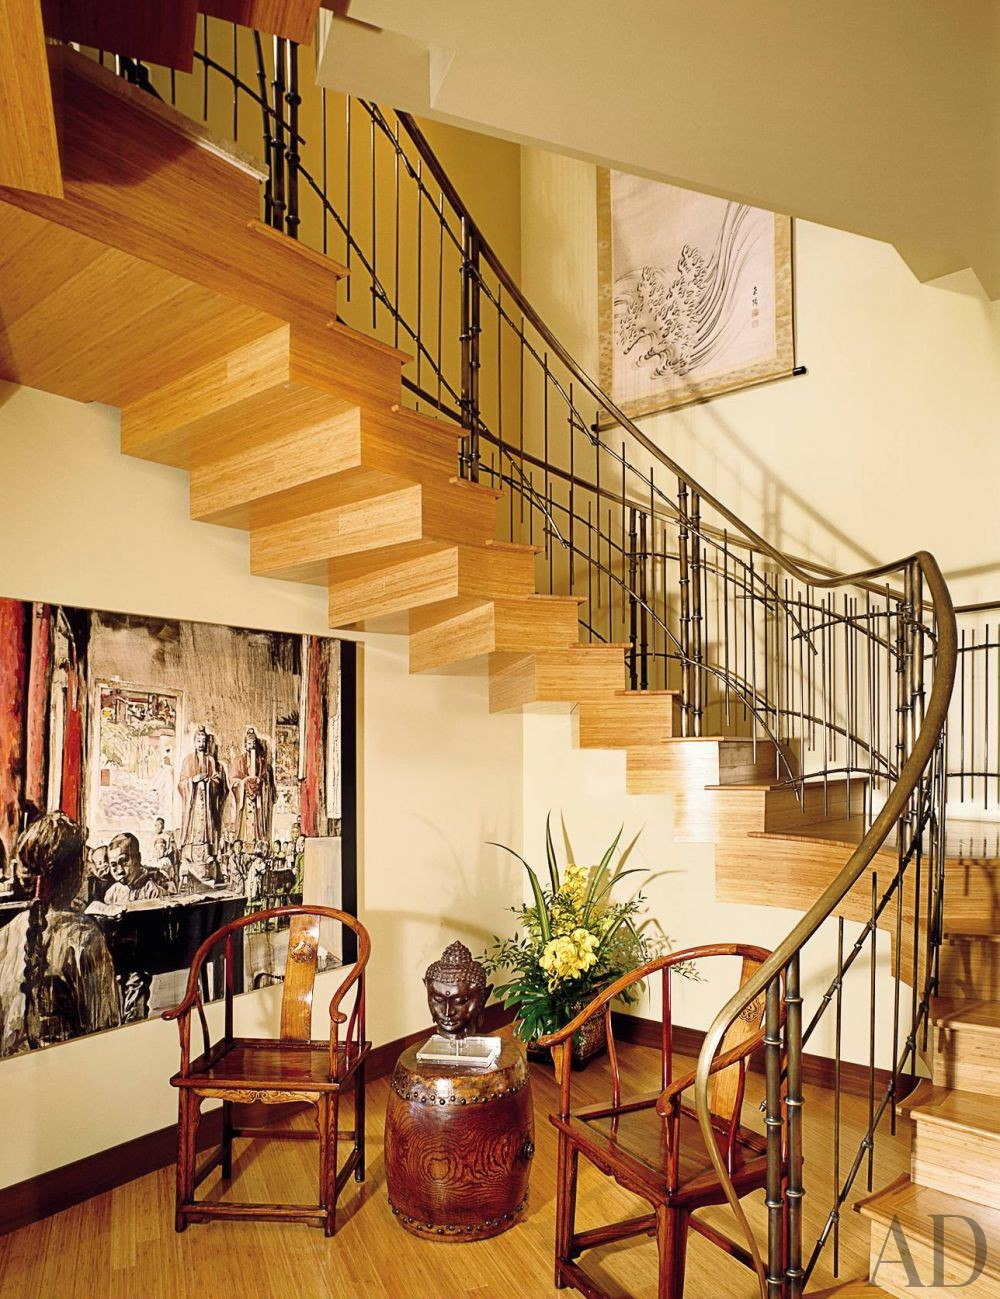 Exotic Staircase/Hallway by Jacques Saint Dizier and Donald Botsai in Oahu, Hawaii